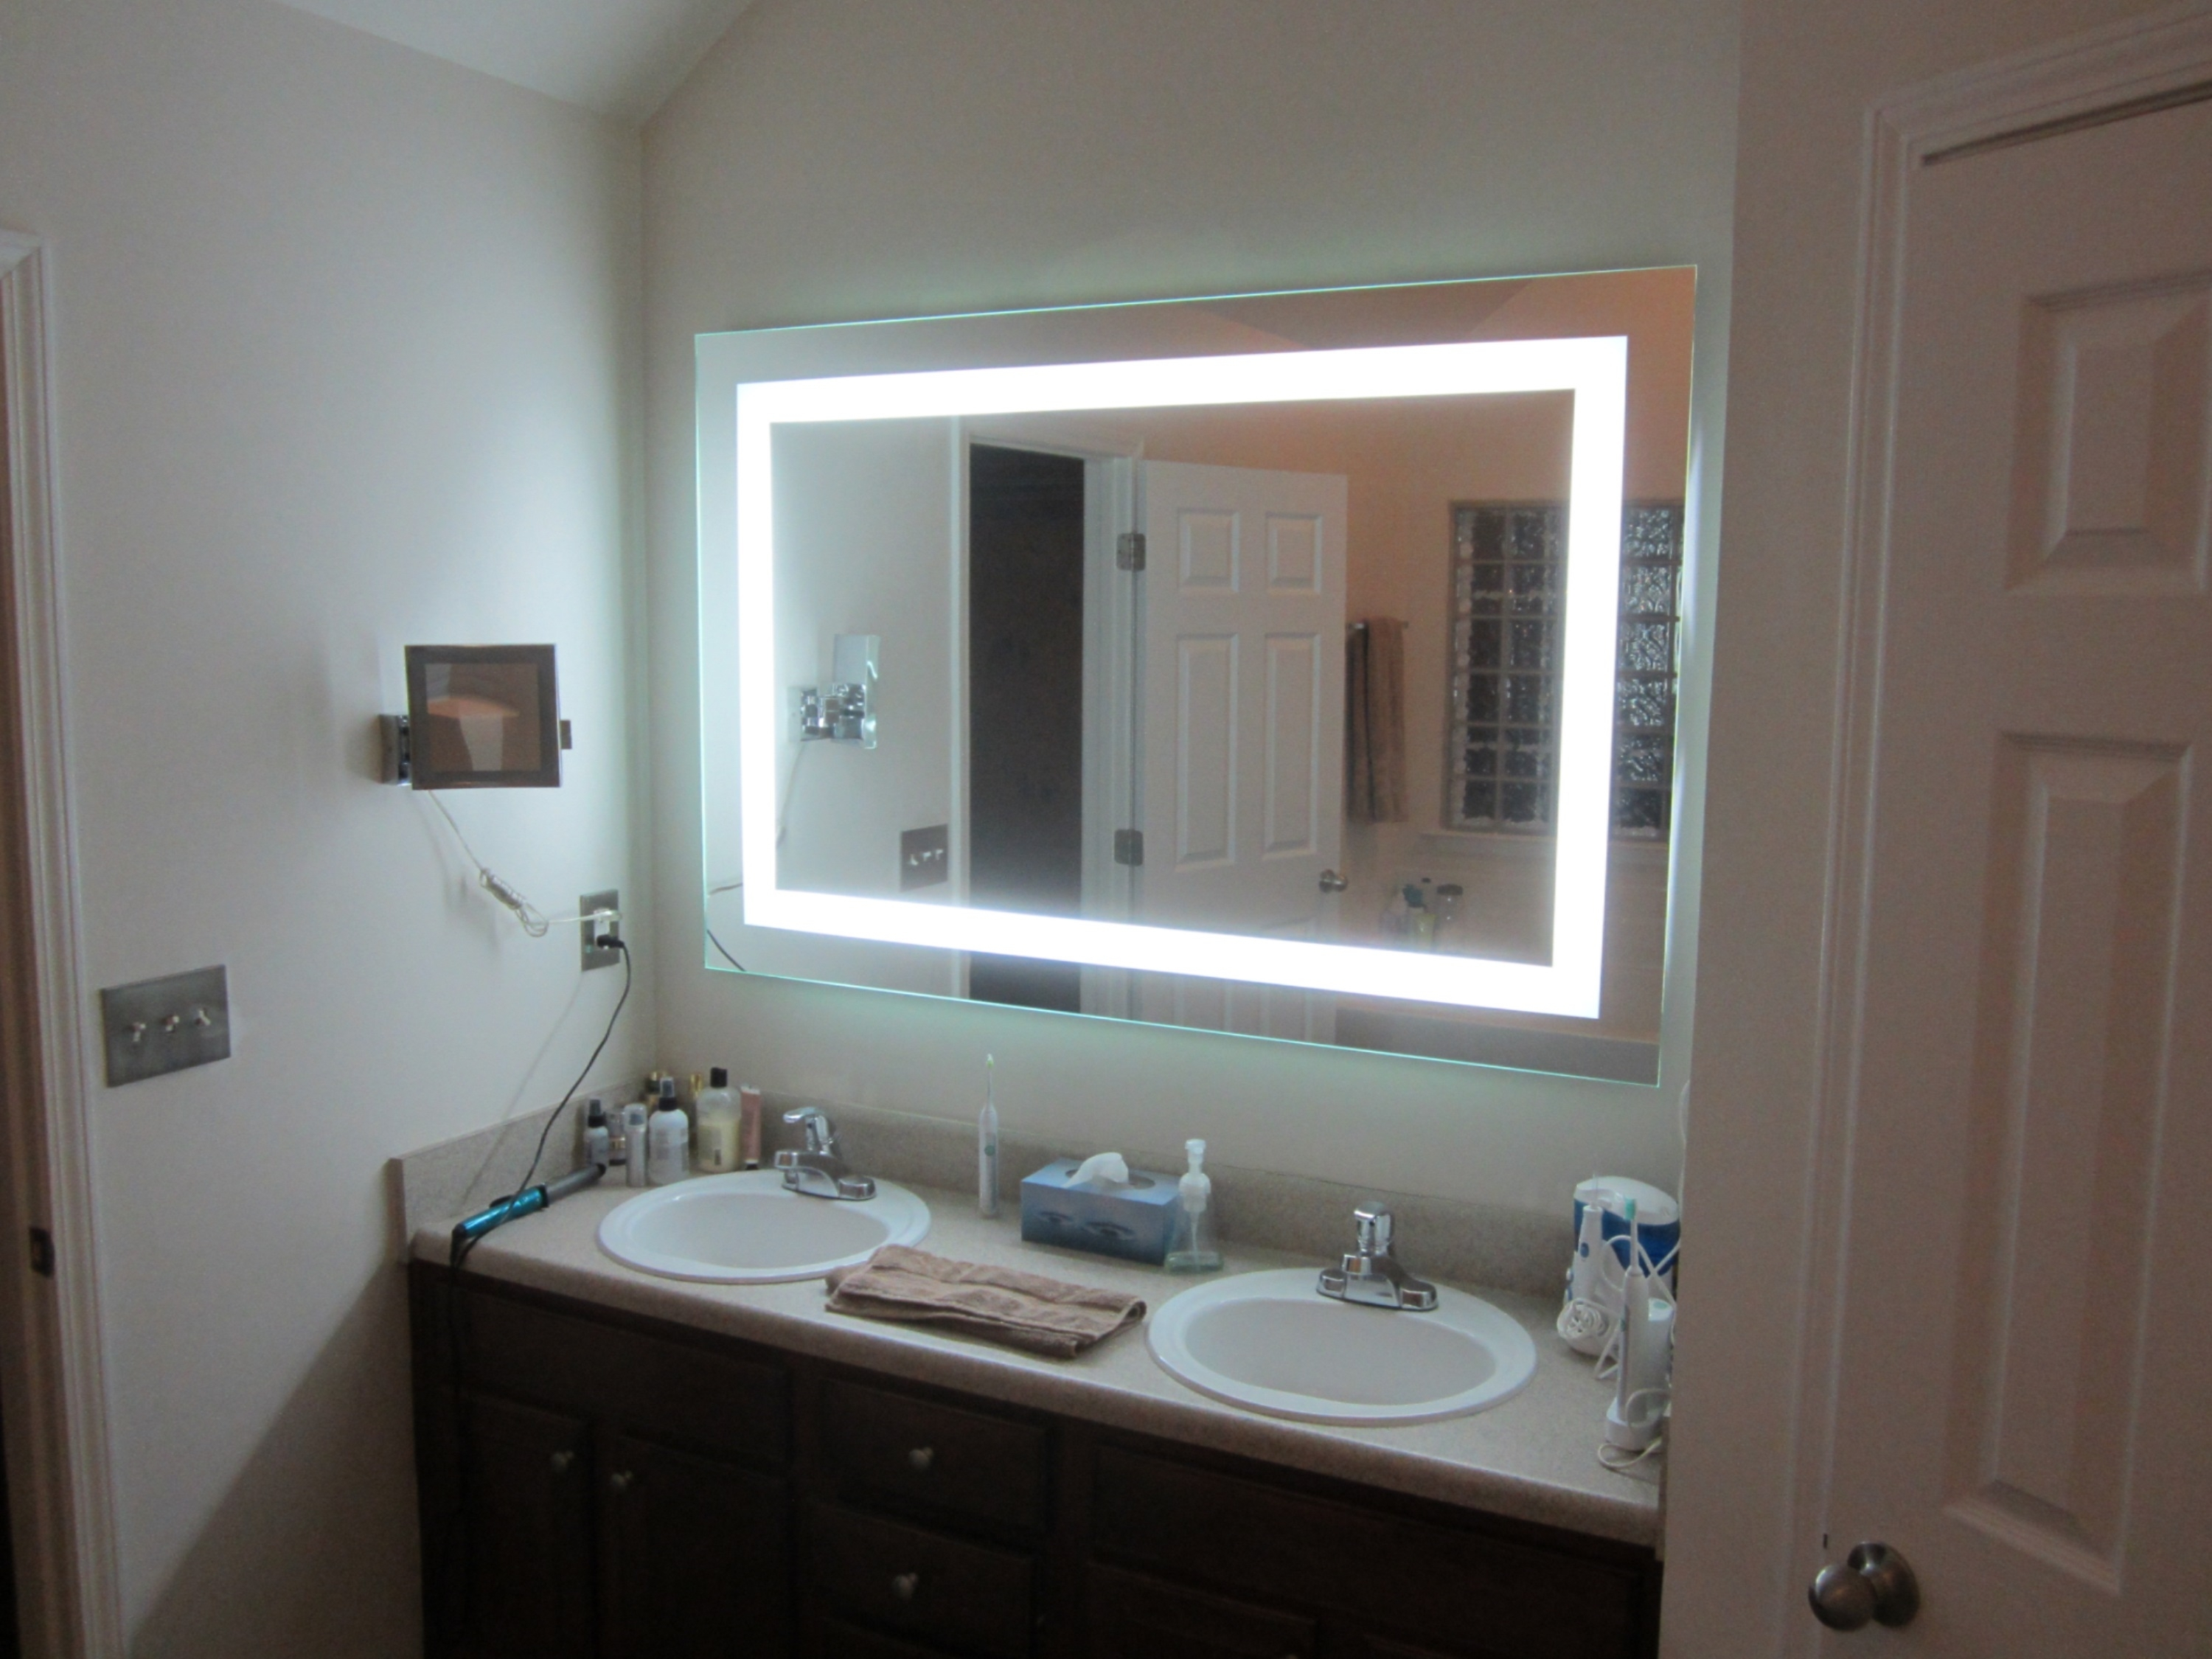 Conair Lighted Mirror Wall Mount